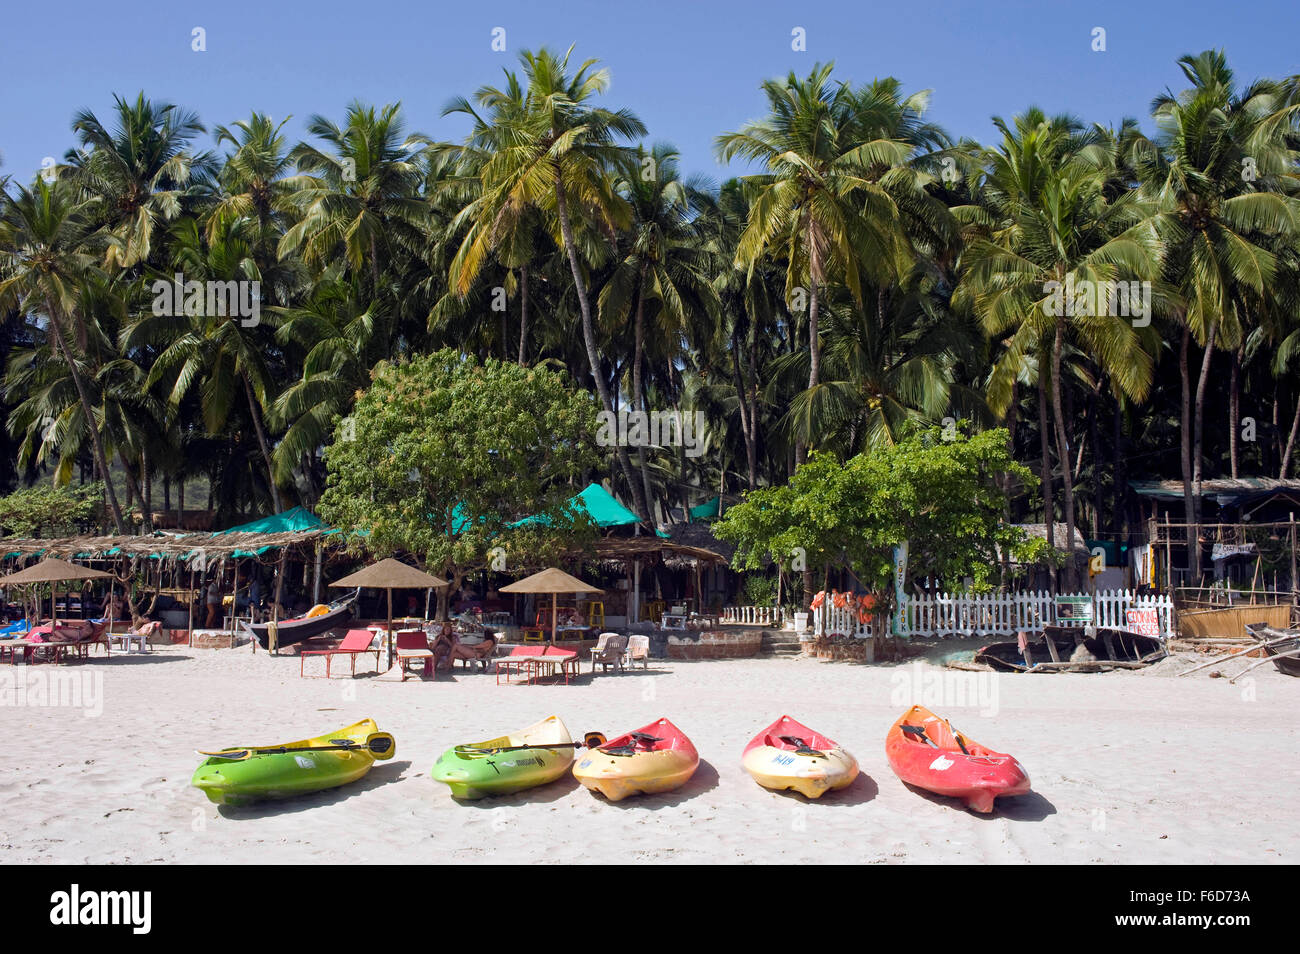 Fishing boats on palolem beach, goa, india, asia - Stock Image